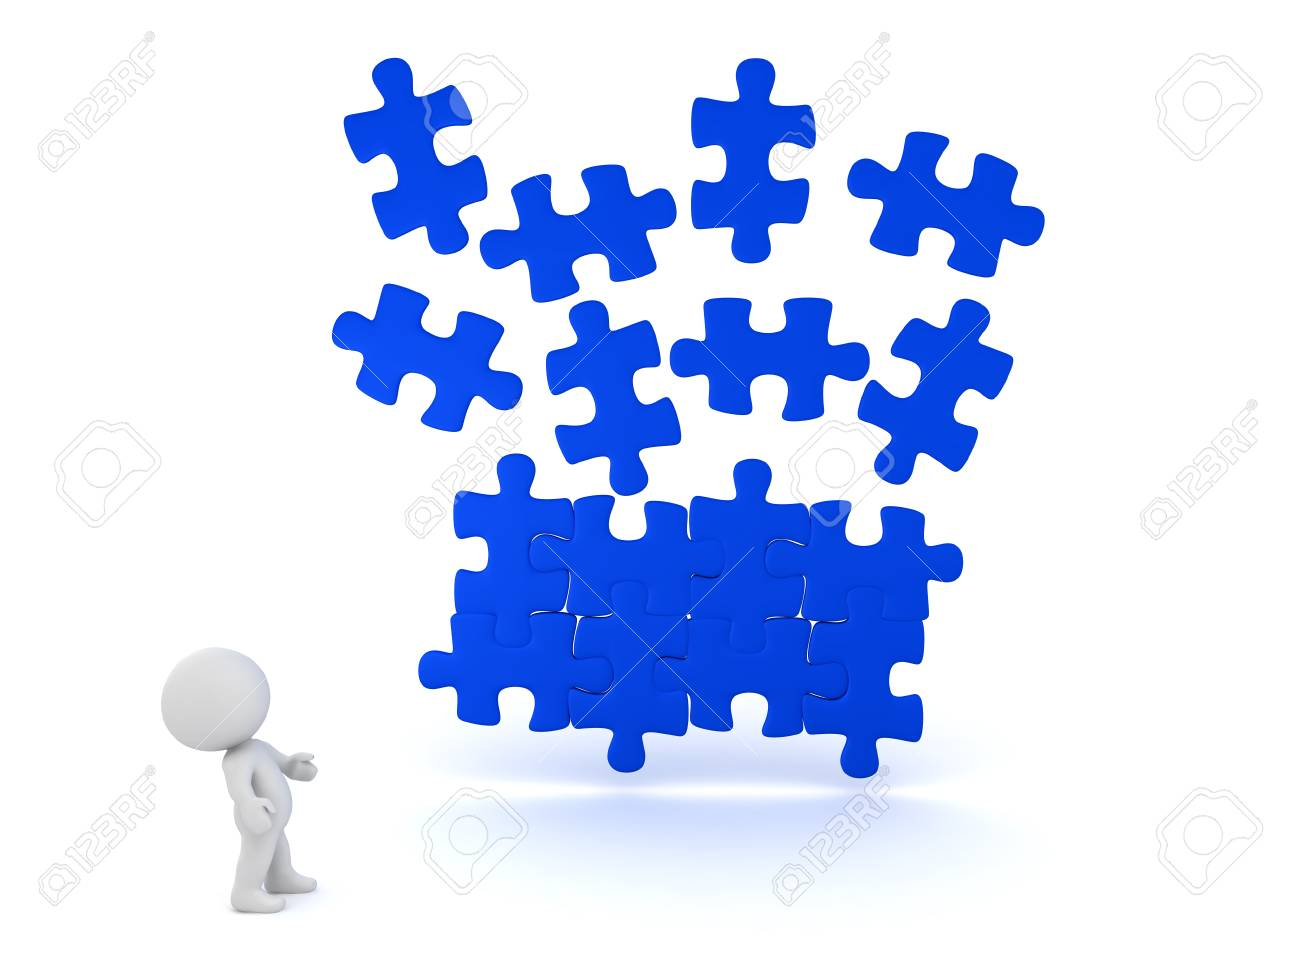 3d illustration of blue puzzle piece falling into place with stock